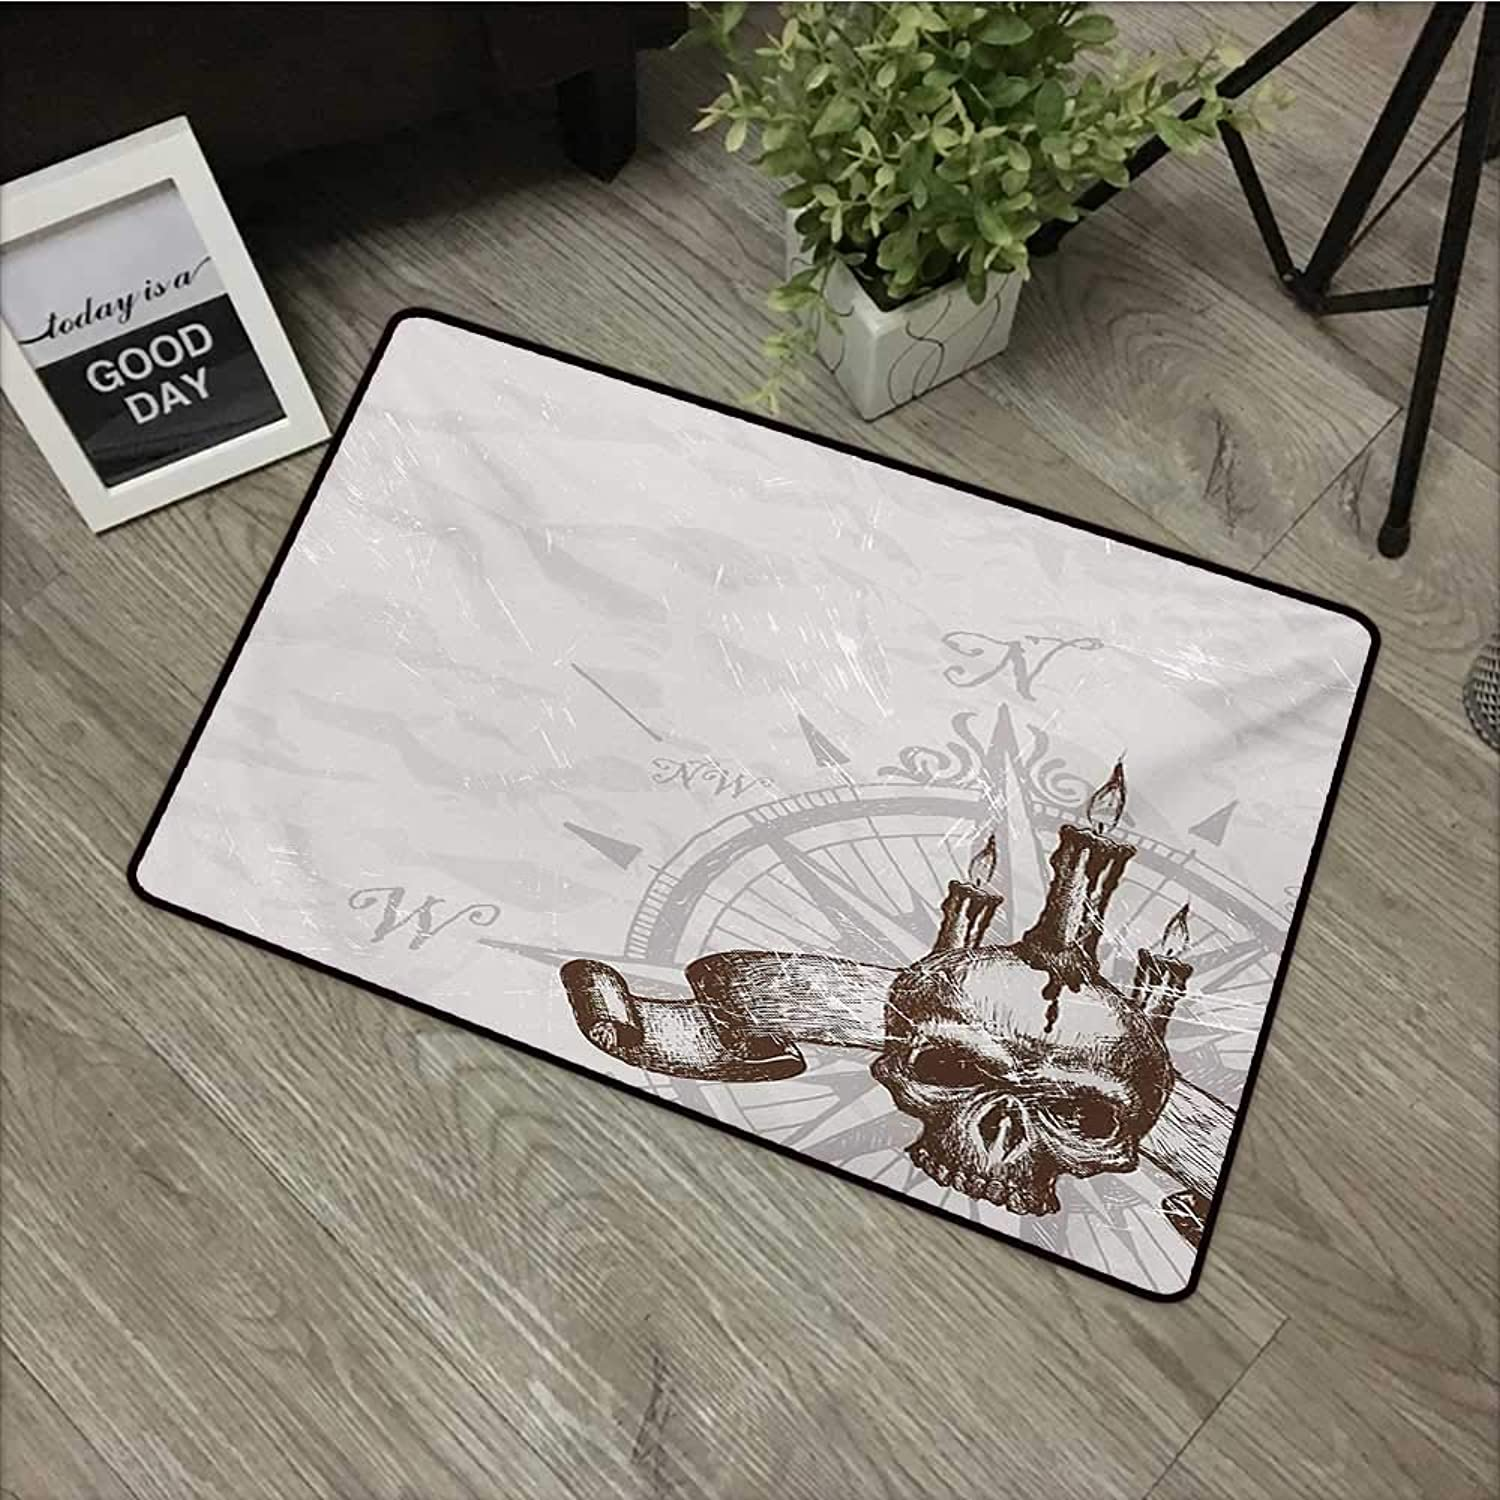 Corridor Door mat W35 x L59 INCH Compass,Compass with Skull and Candles Spooky Adventure New Pirate Destinations Theme,Brown Pearl Grey Non-Slip, with Non-Slip Backing,Non-Slip Door Mat Carpet